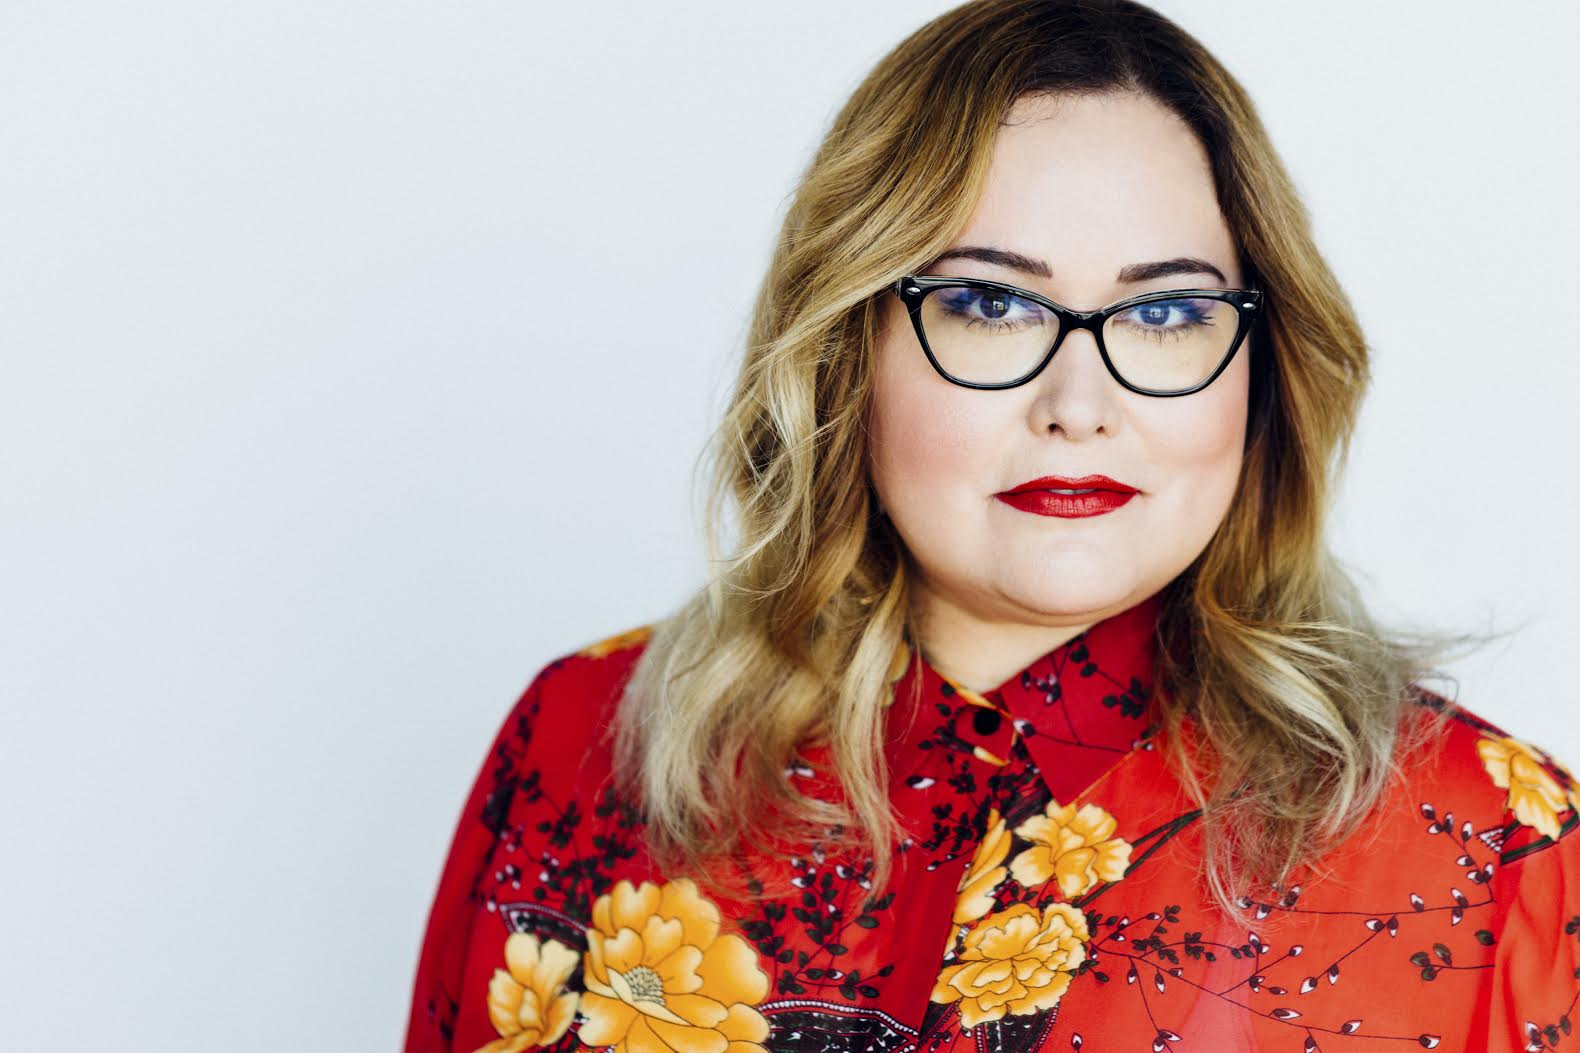 This Latina Writer Is Developing a 'Brujas' TV Show Starring Afro-Caribbean Women